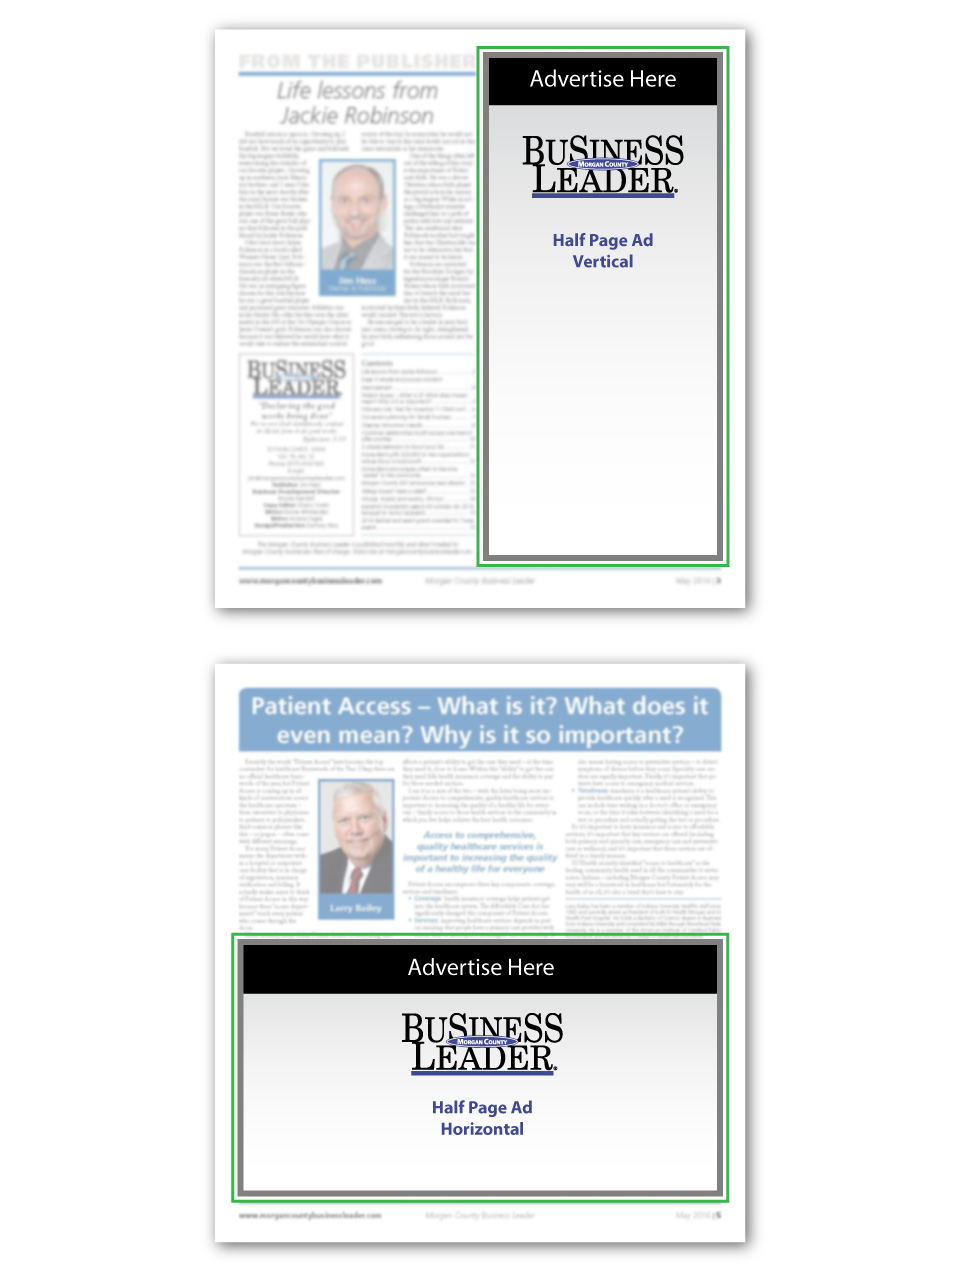 Print-Ad-Layout-Half-Page